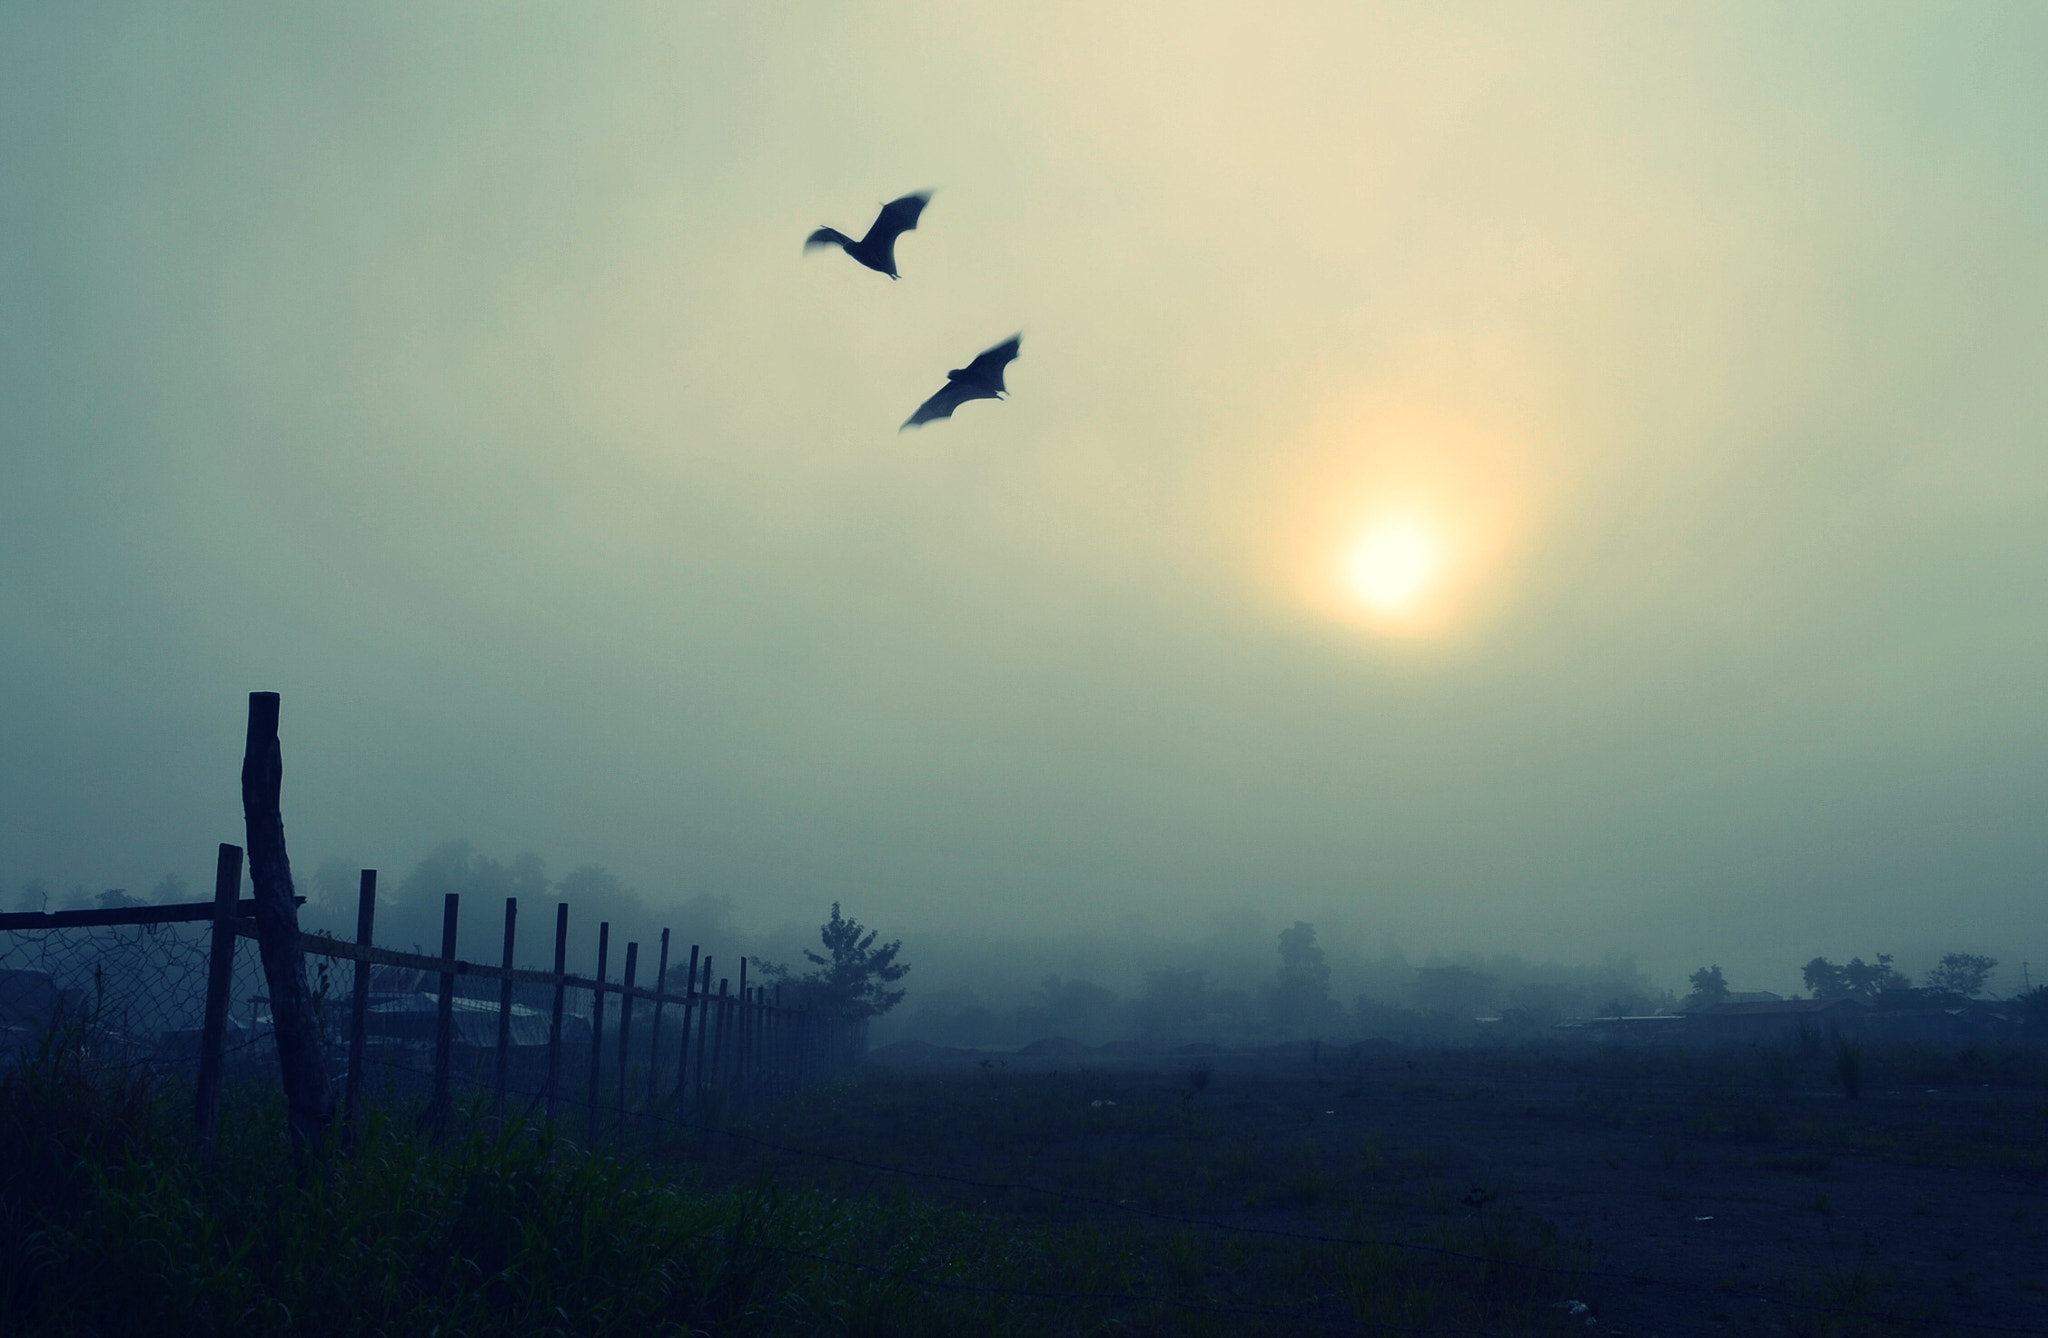 Photograph The murky light of early morn by Vey Telmo on 500px